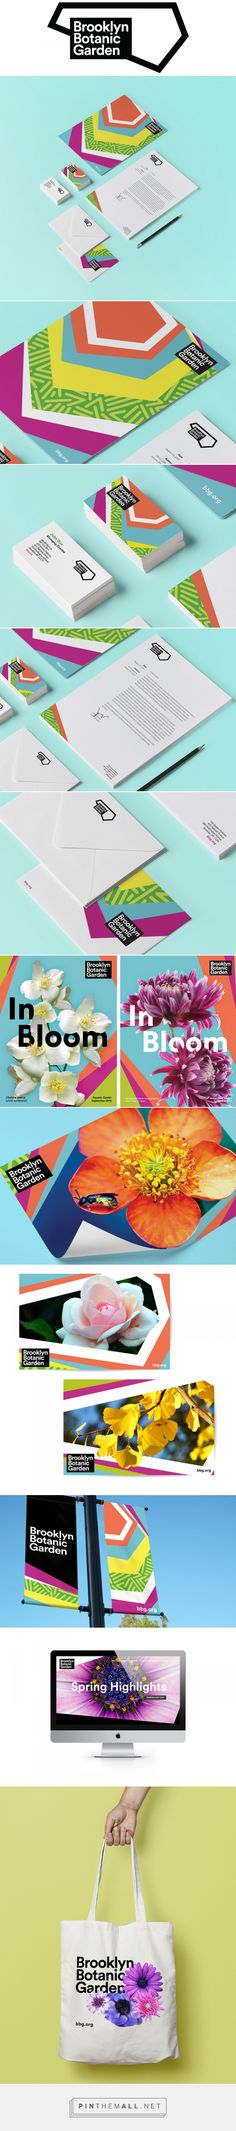 Brooklyn Botanic Garden on Behance… – a grouped images picture – corporate branding identity City Branding, Stationary Branding, Branding Agency, Corporate Branding, Logo Branding, Corporate Design, Brand Identity Design, Graphic Design Branding, Logo Design